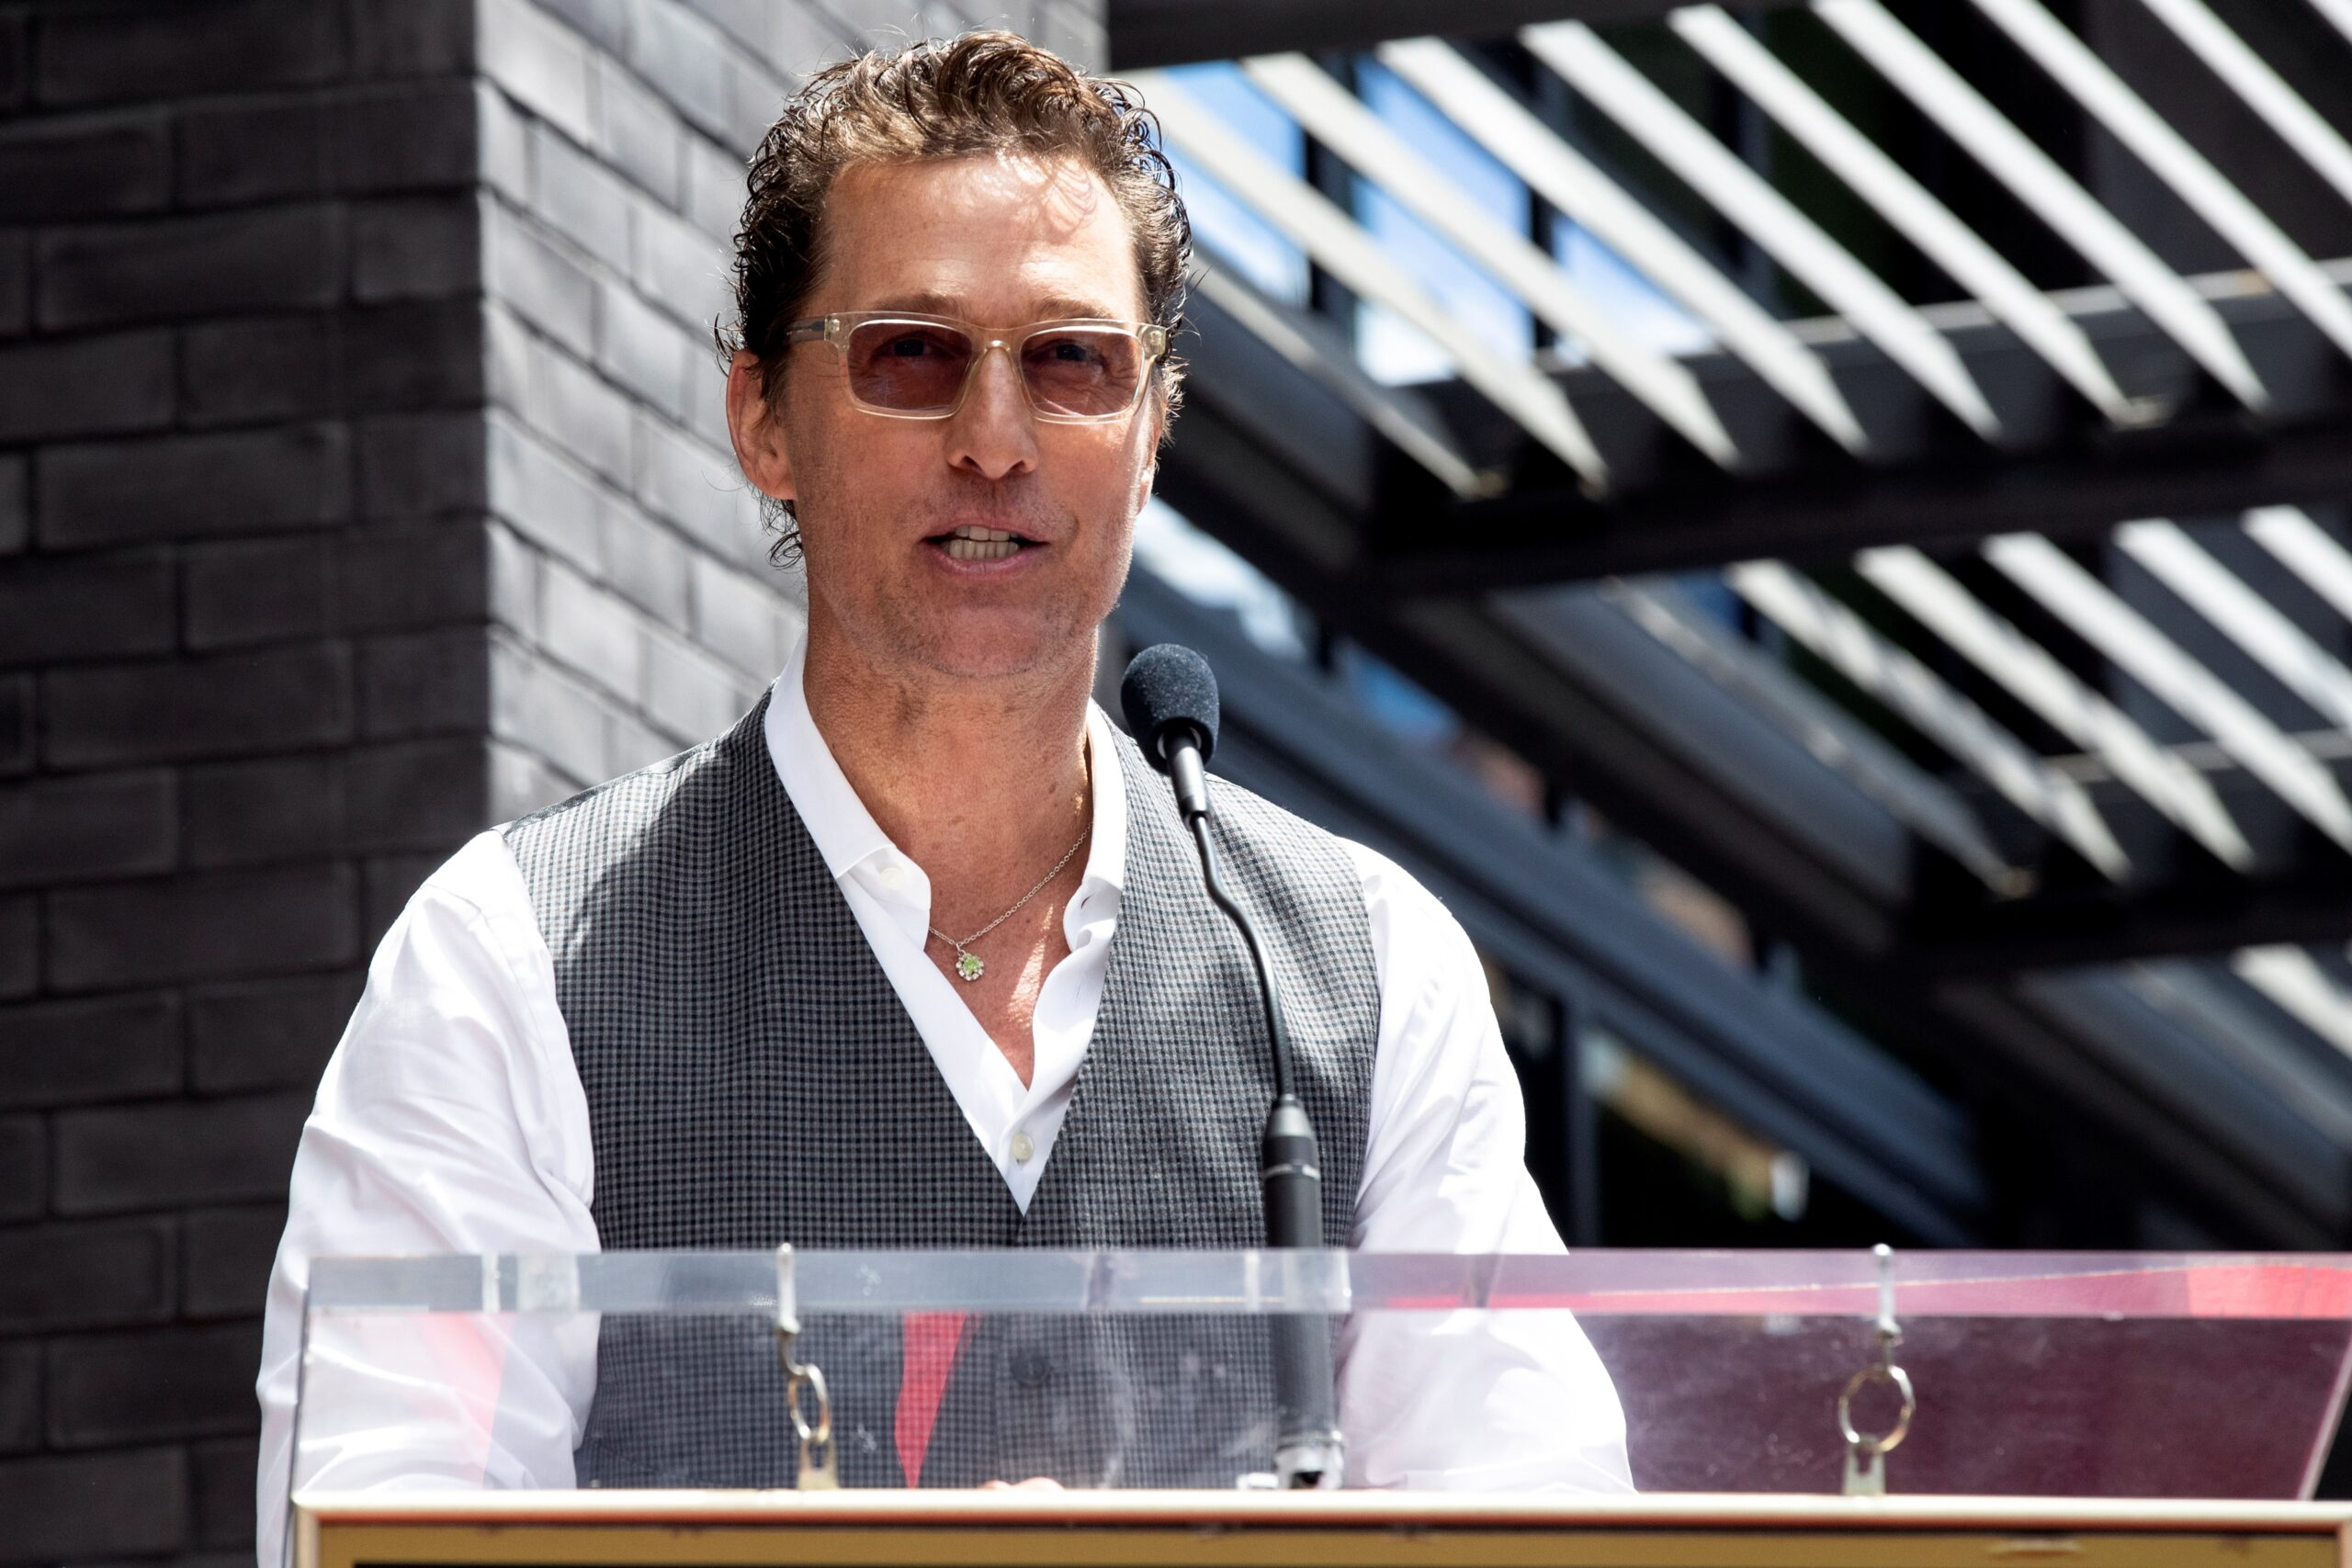 Matthew McConaughey, on his own pages